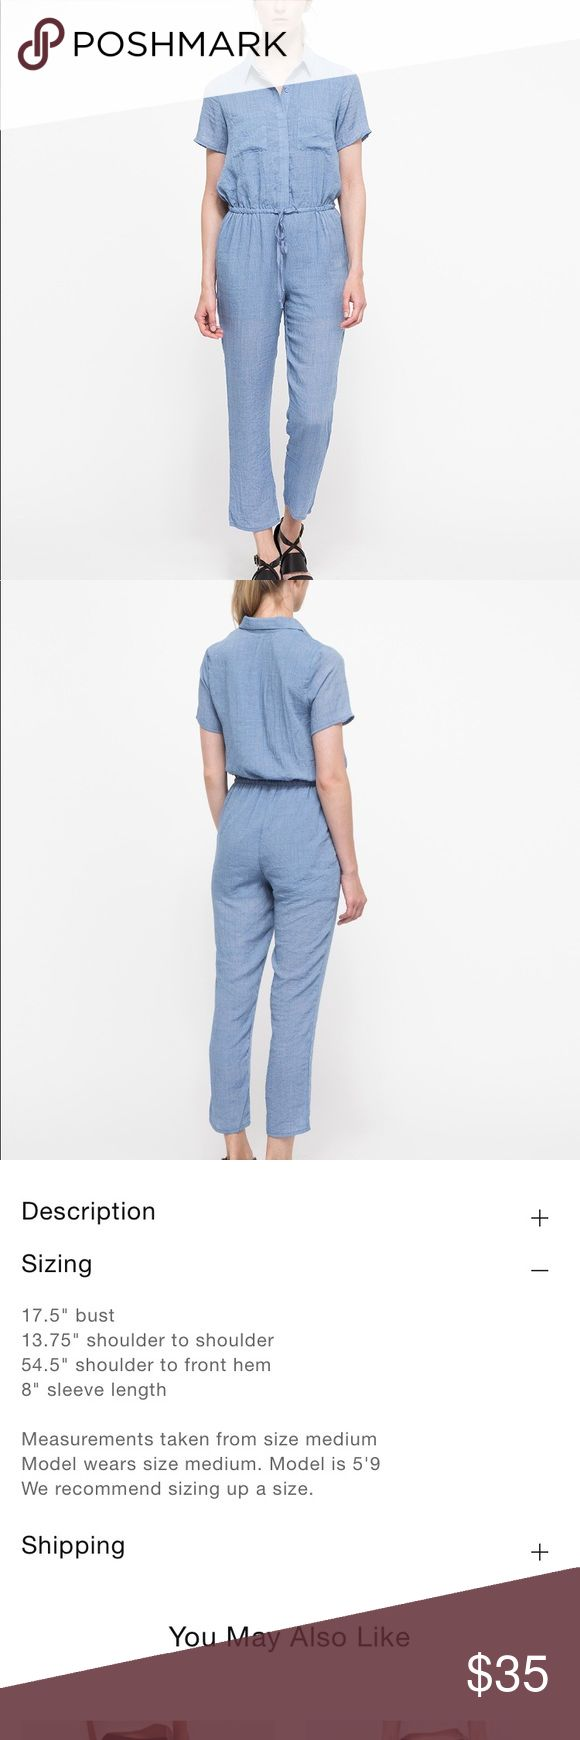 Need Supply Co Farrow Haikou Jumpsuit Light Blue M Super lightweight cotton jumpsuit. Some snags and general wear, but still in good condition. See photos for measurements from the Need Supply Co website. Size Medium, but runs small. Please contact me with any questions!! Farrow Need Supply Co Reformation Pants Jumpsuits & Rompers